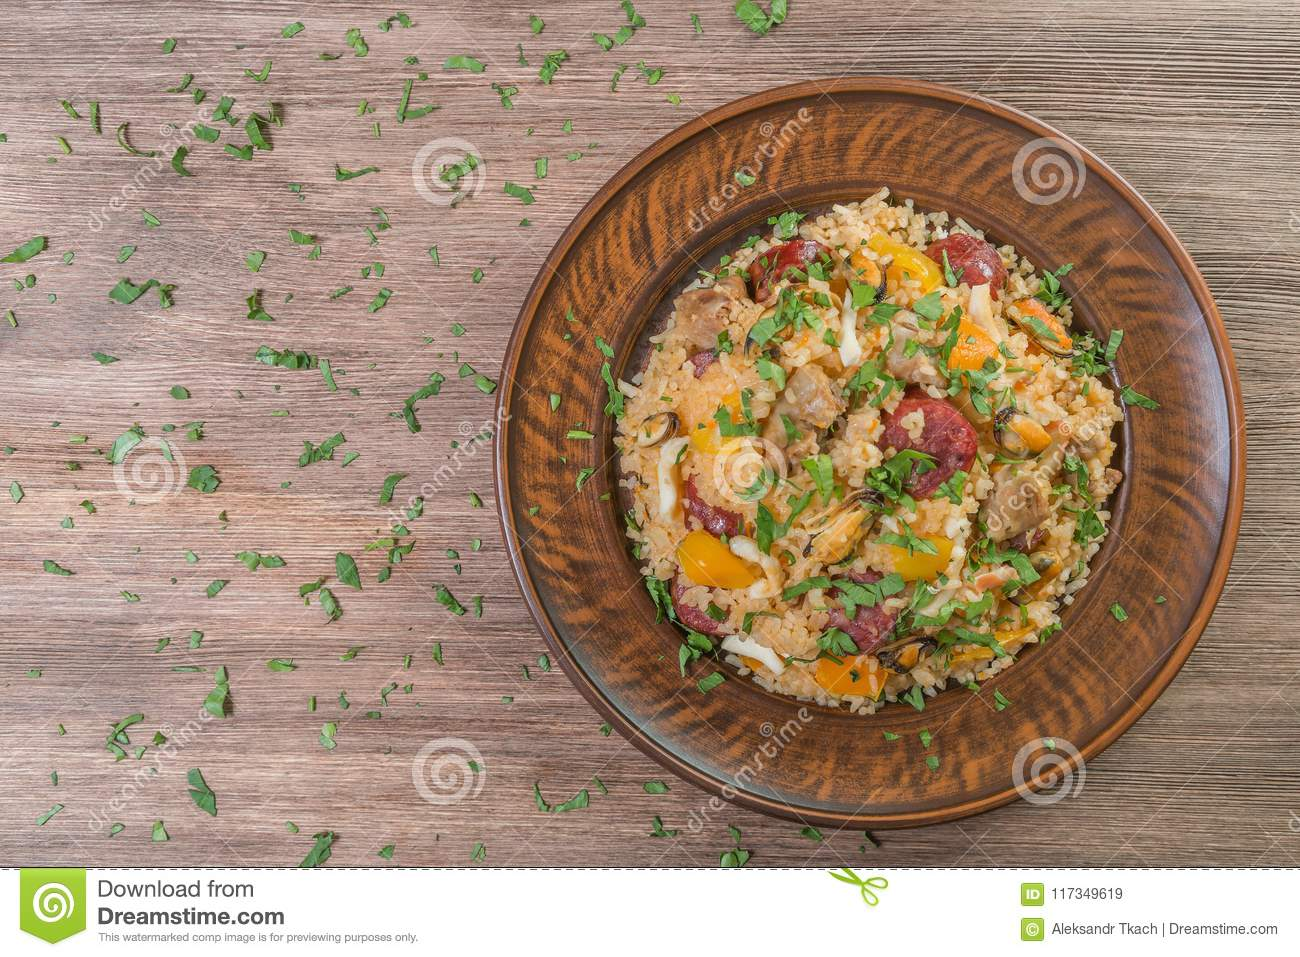 Jambalaya in a ceramic plate. The national dish of the United States. The view from the top. Close-up.